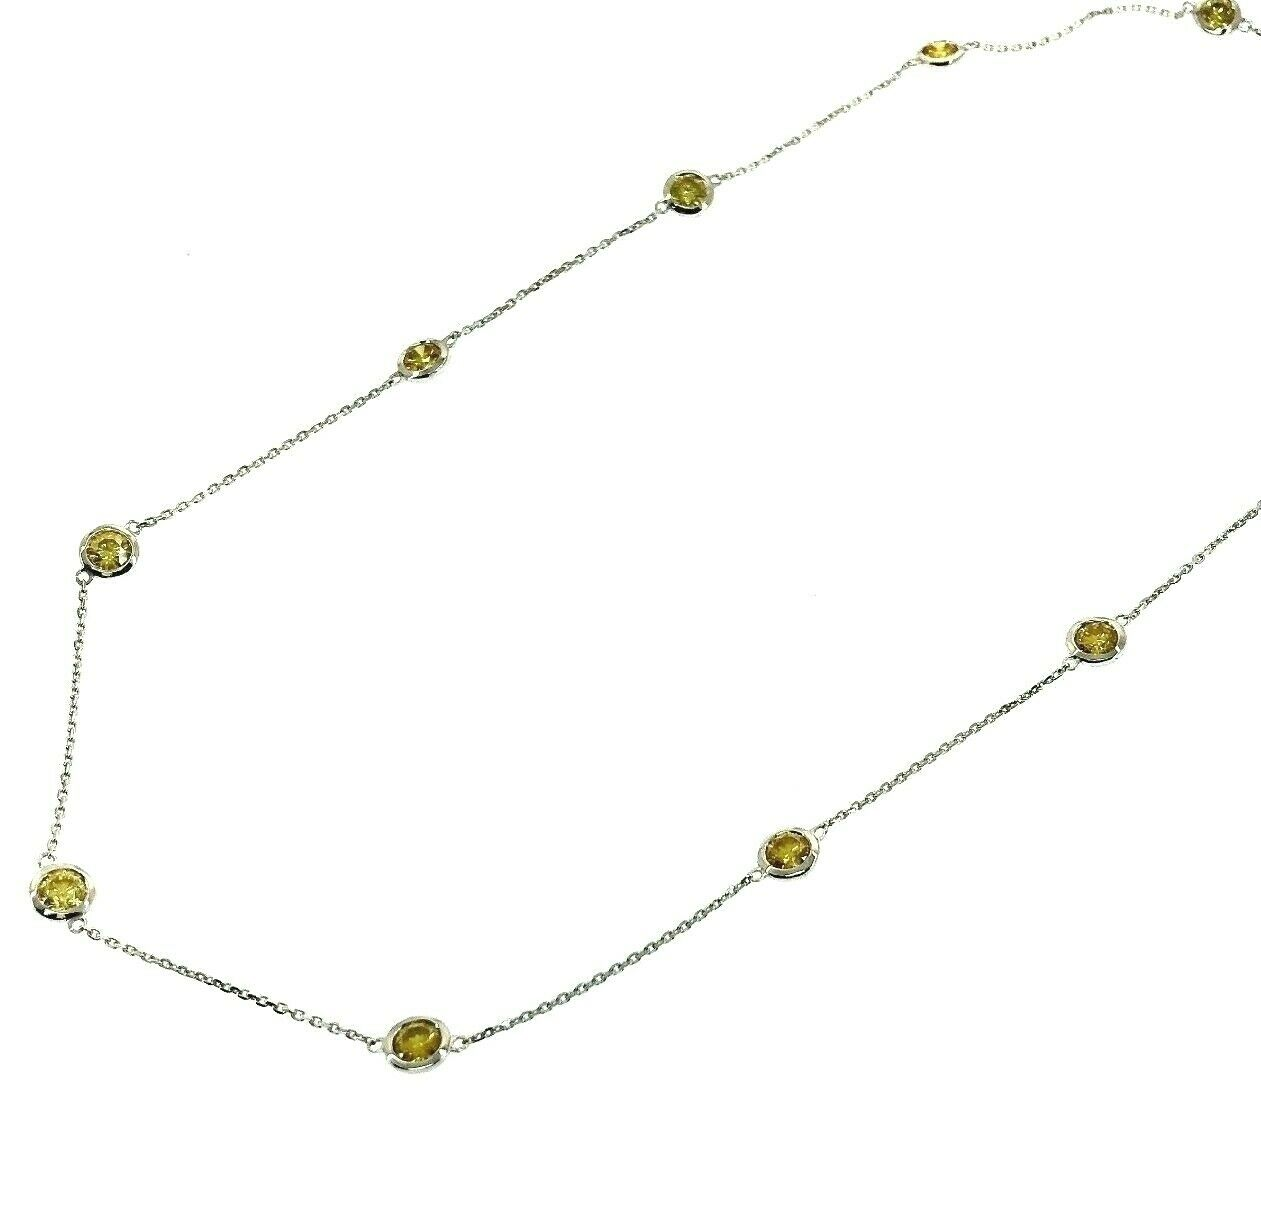 3.75 Carats Hand Assembled Fancy Yellow Diamond by The Yard Necklace Chain